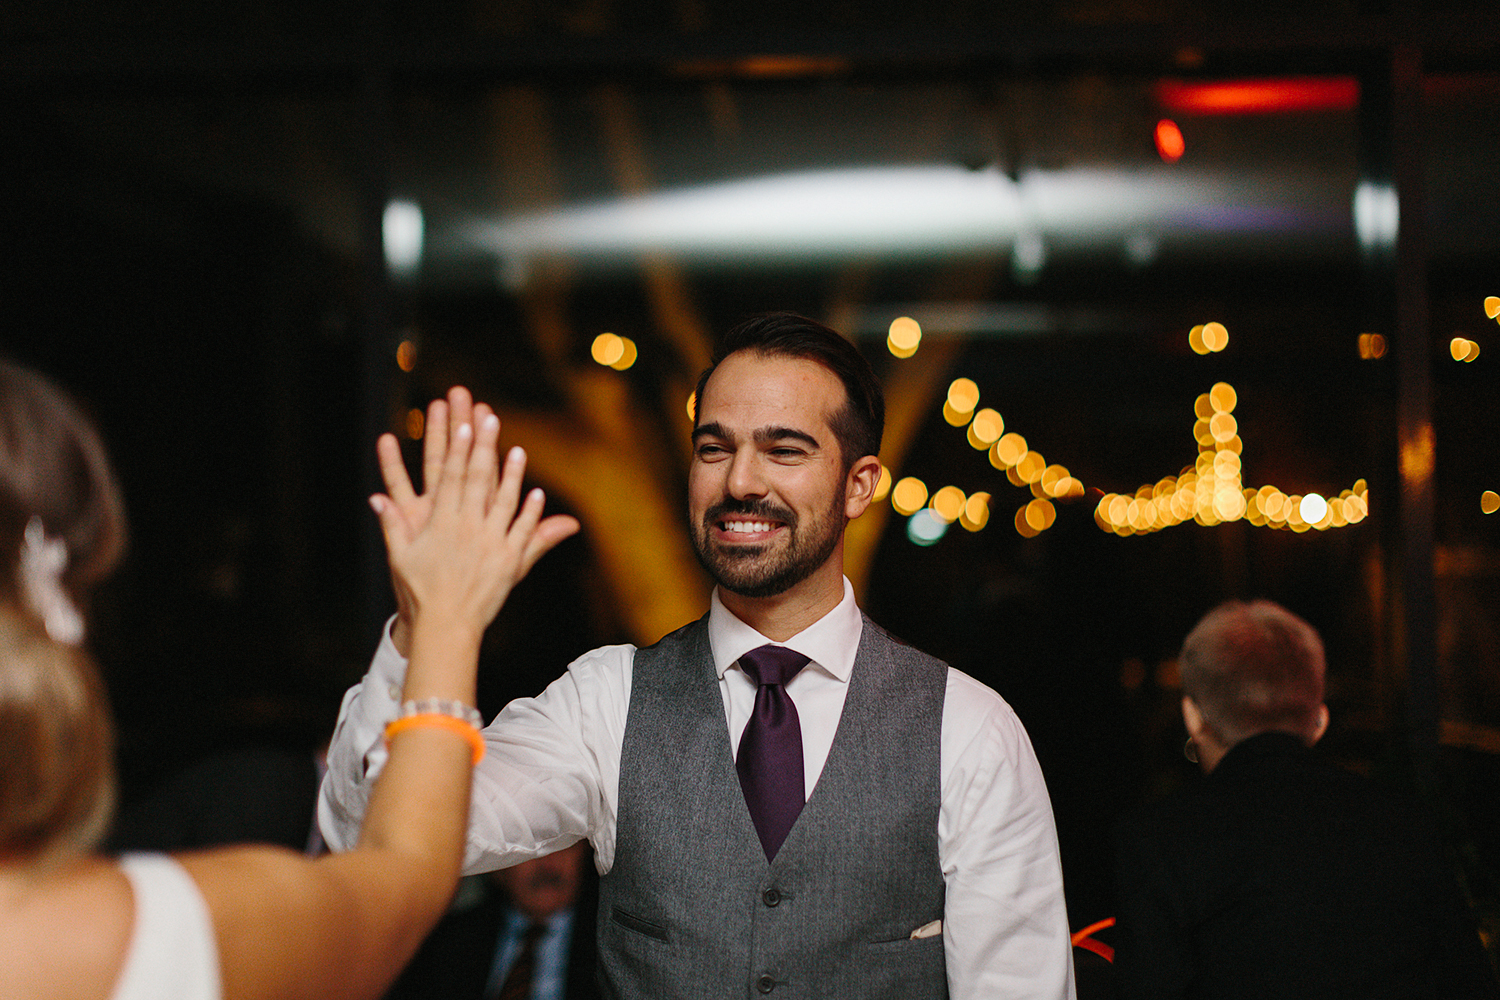 Prince-Edward-County-Wedding-Photographer-Drake-Devonshire-Elopement-Ryanne-Hollies-Photography-junebug-weddings-best-of-the-best-reception-glassbox-groom-high-fiving-bride.jpg